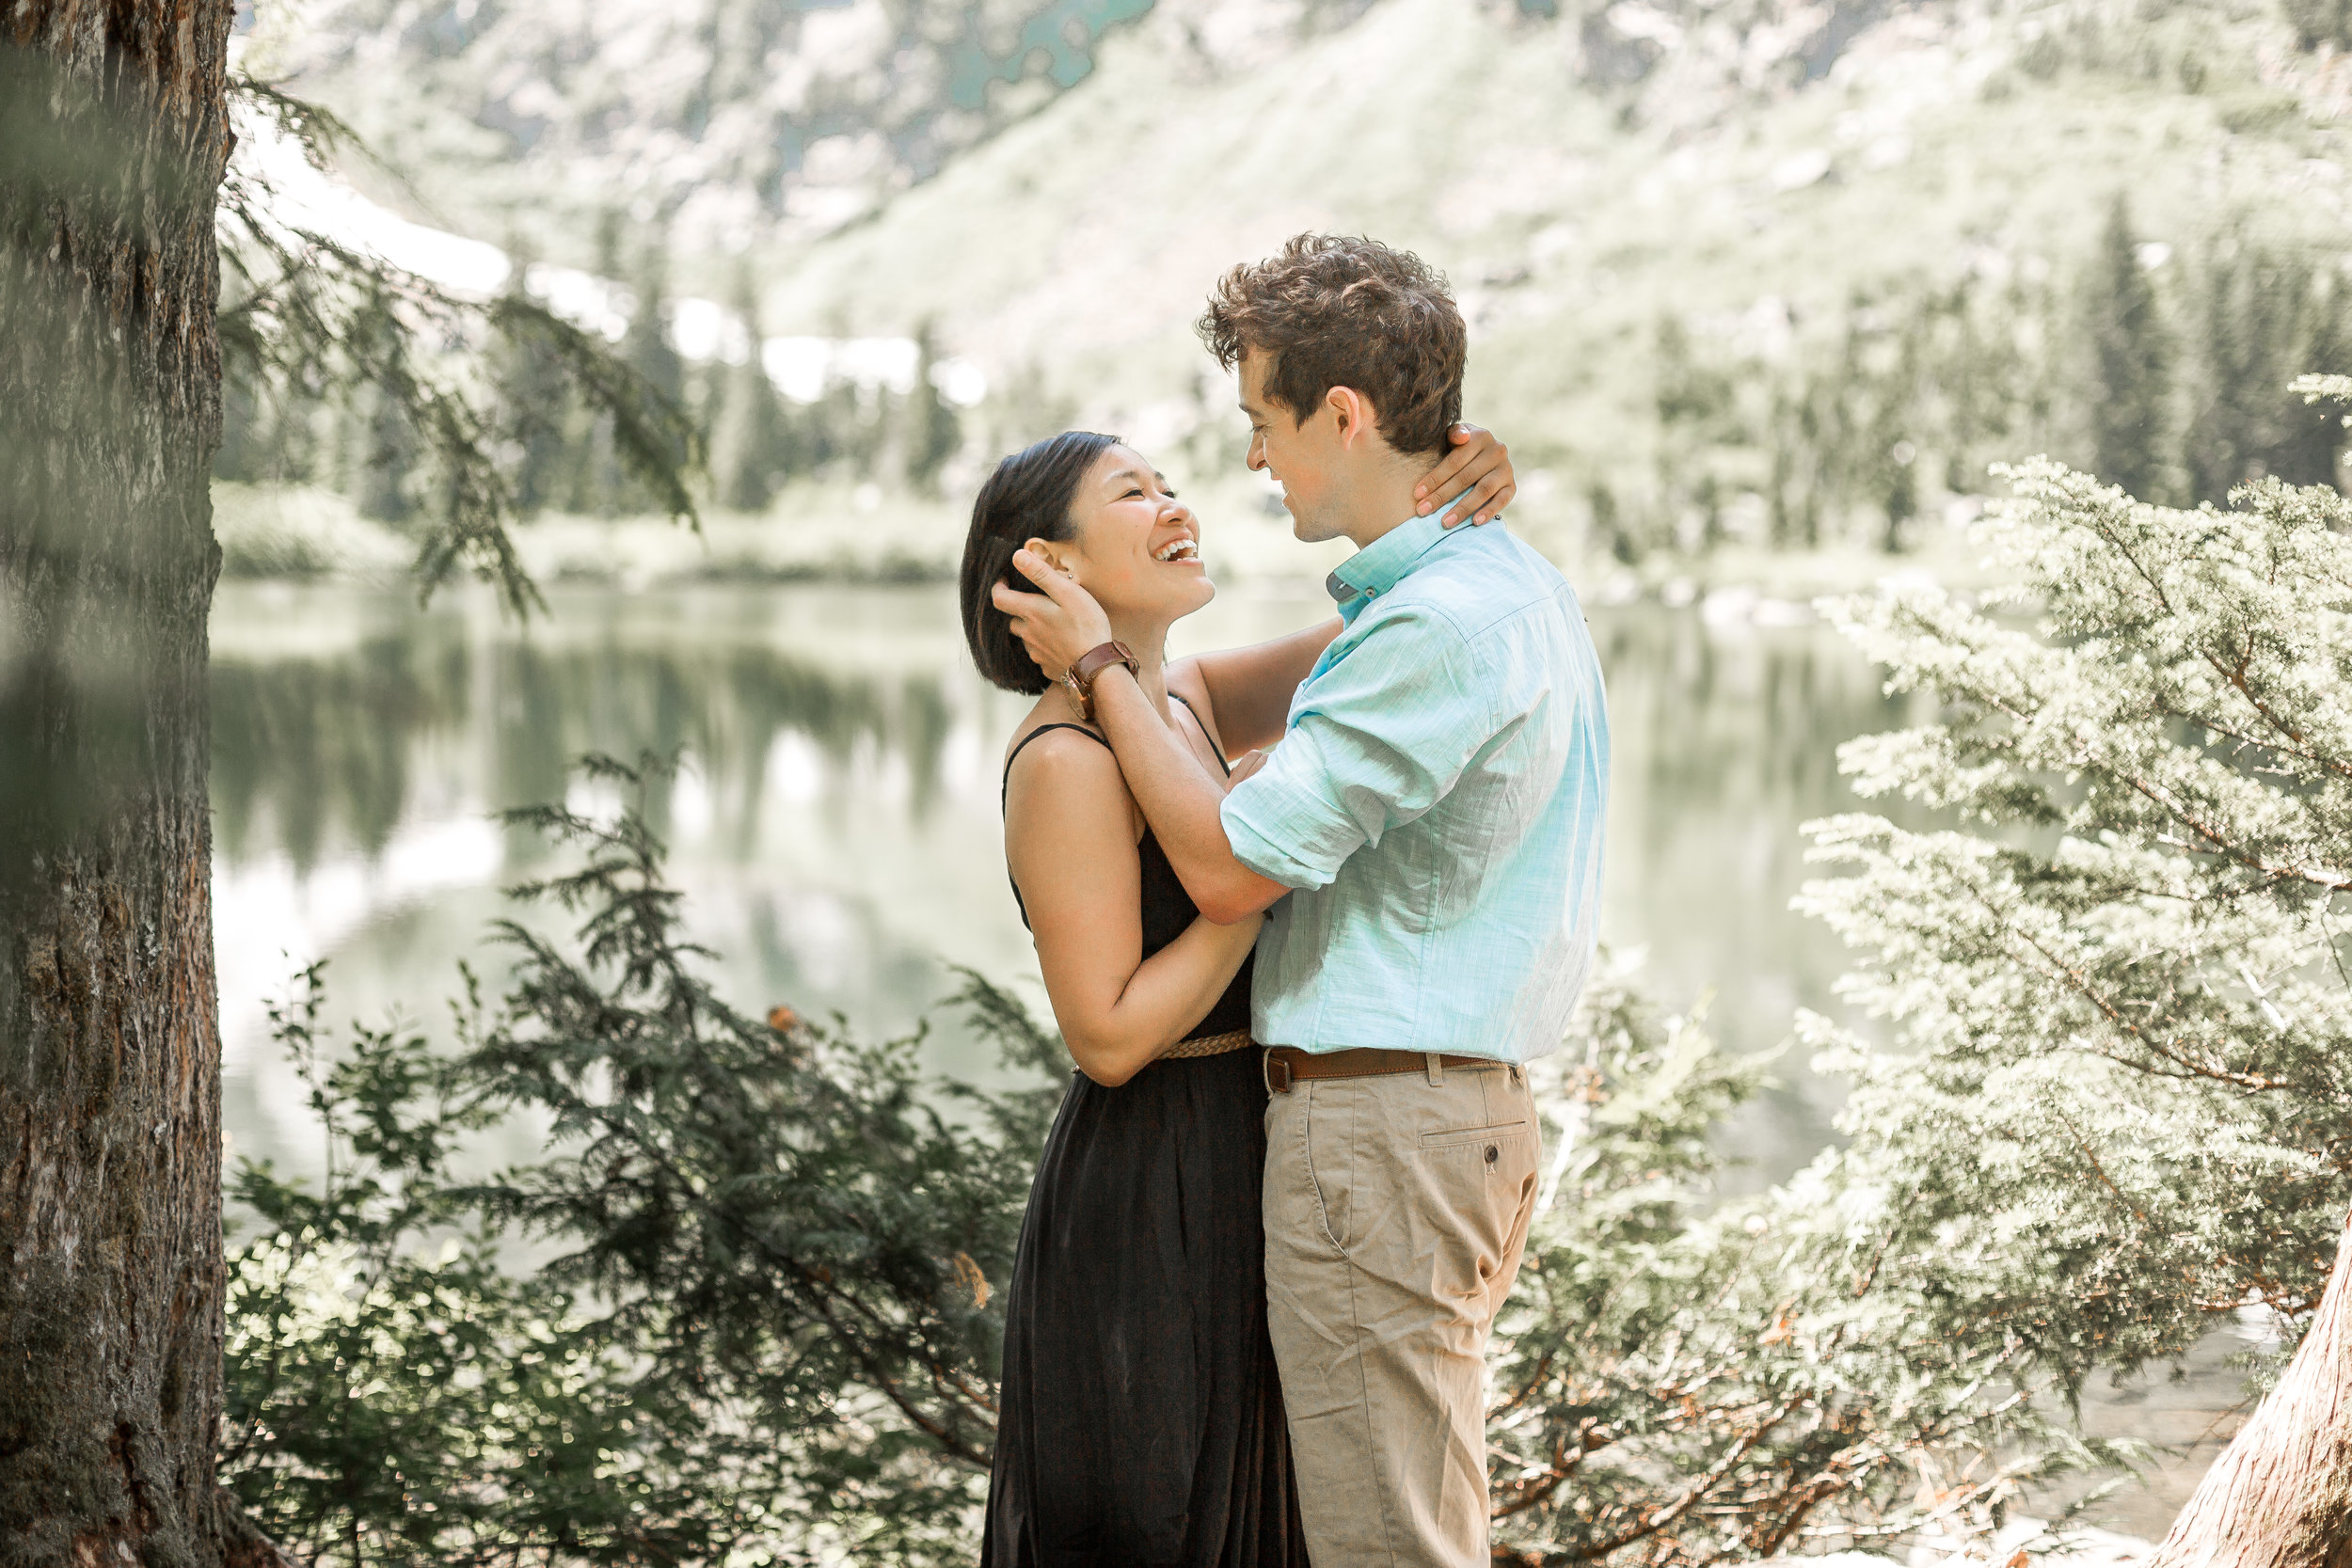 nicole-daacke-photography-hiking-engagement-session-in-snoqualmie-pass-washington-wedding-photographer-seattle-elopement-photography-adventurous-hiking-photos-heather-lake-washington-trails-6.jpg